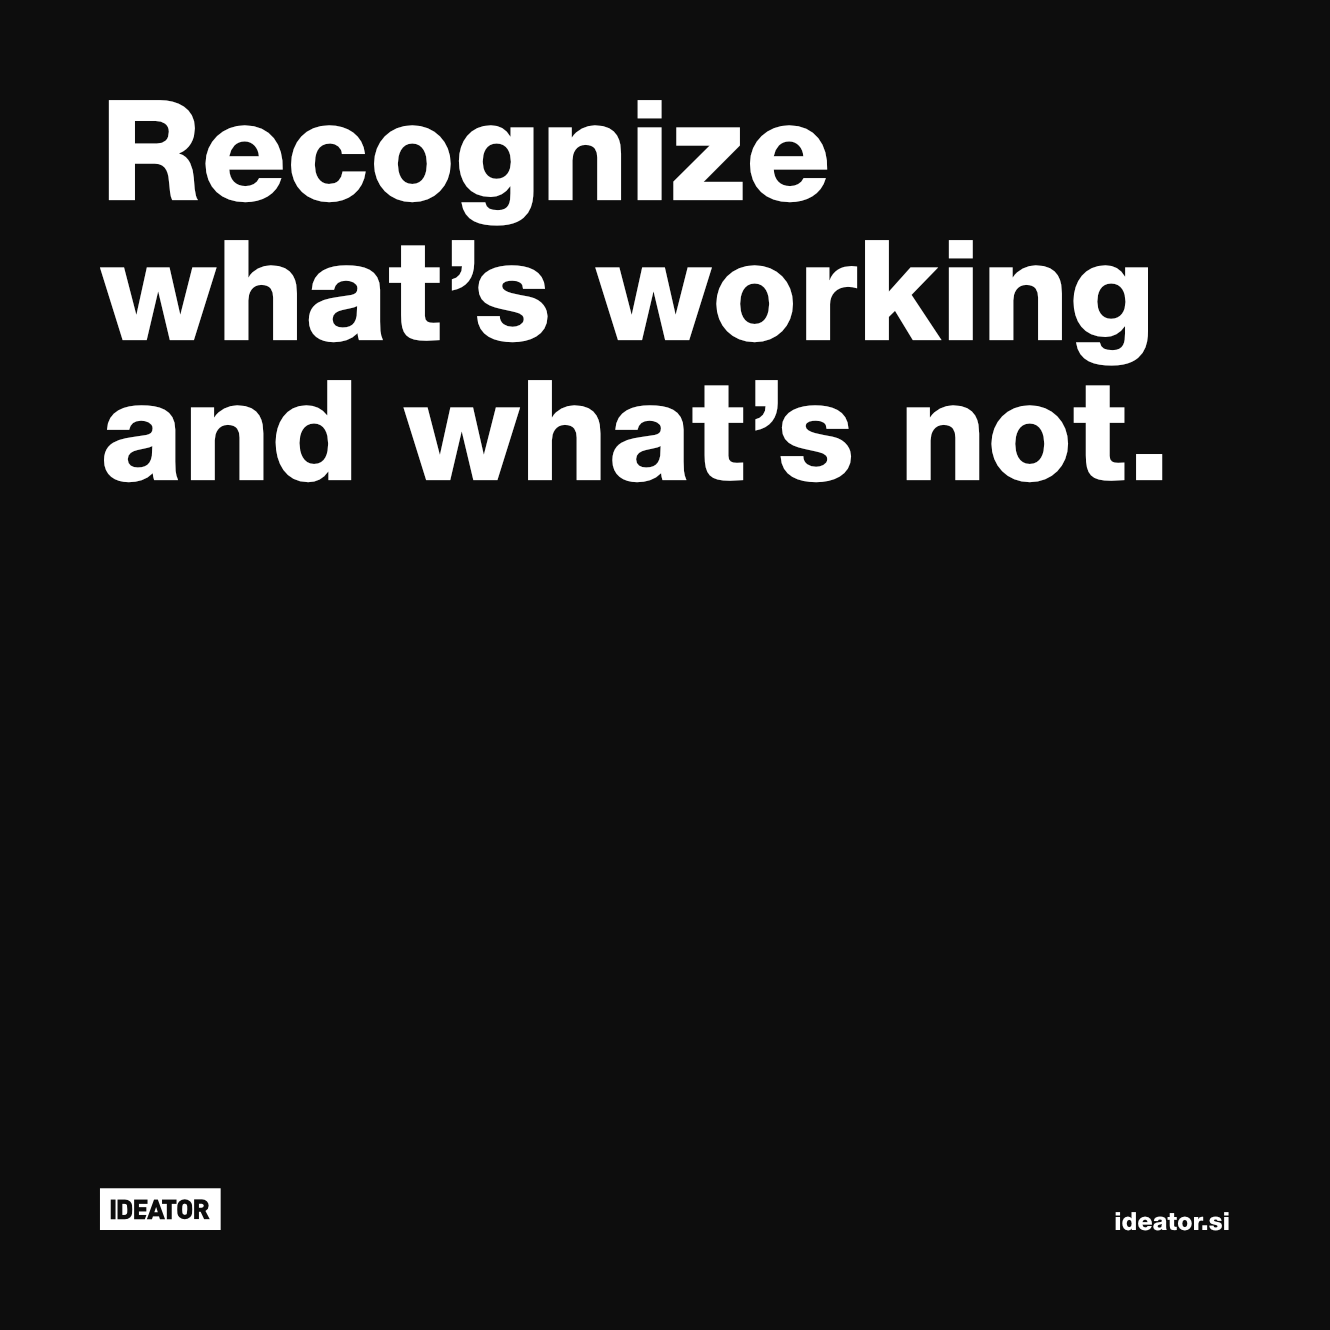 Recognize what's working and what's not.